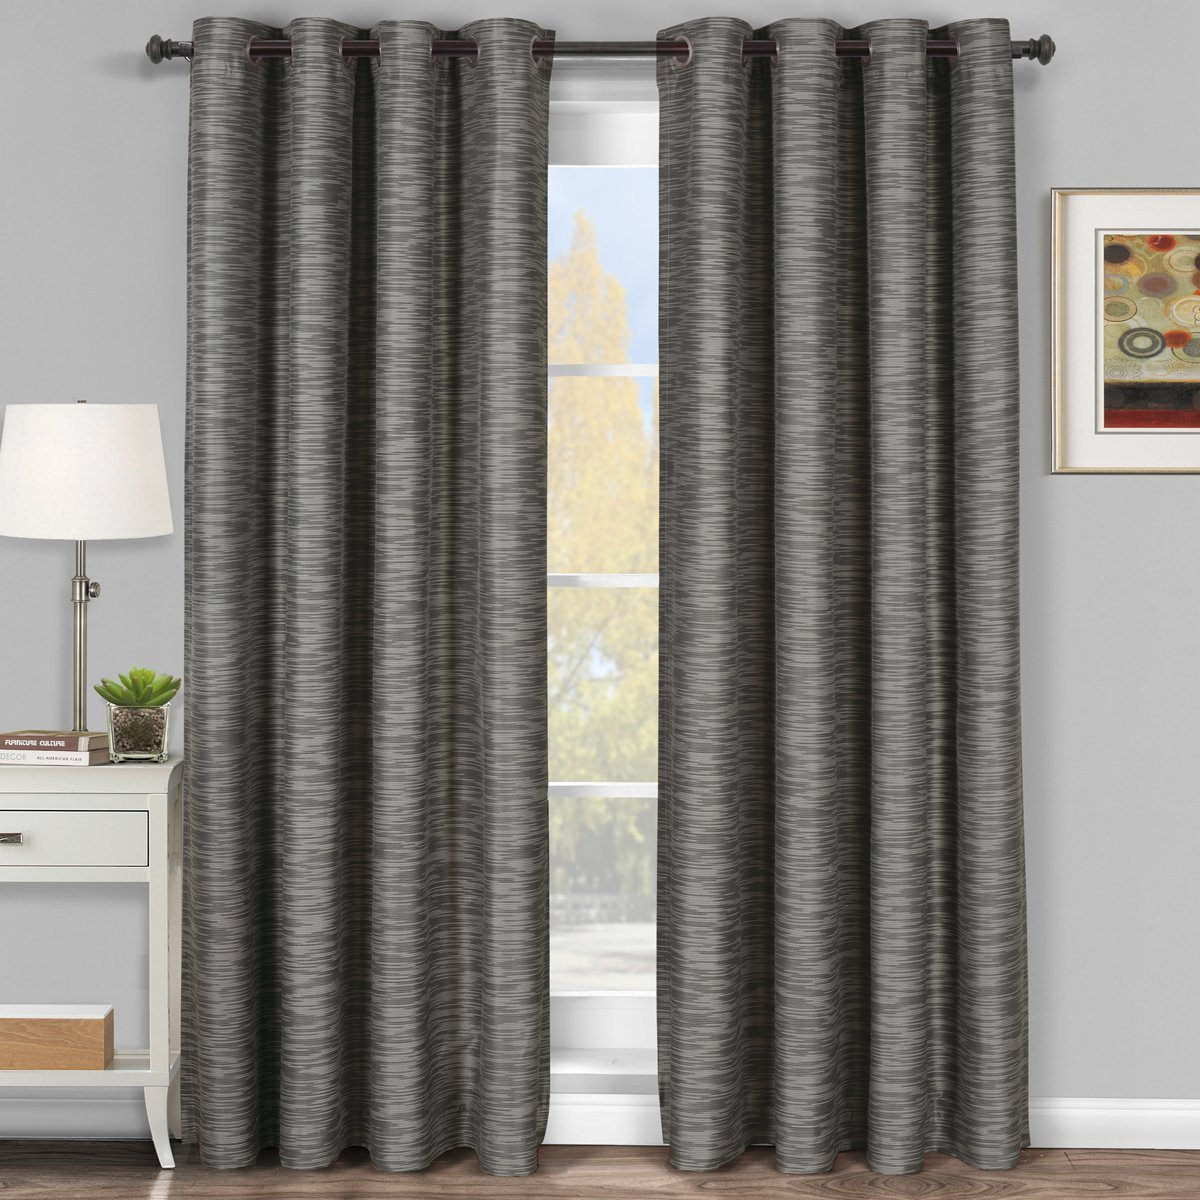 foam clearance com amazon backined thermal walmart drapes panels blackout window design curtain photos phenomenal curtains lined